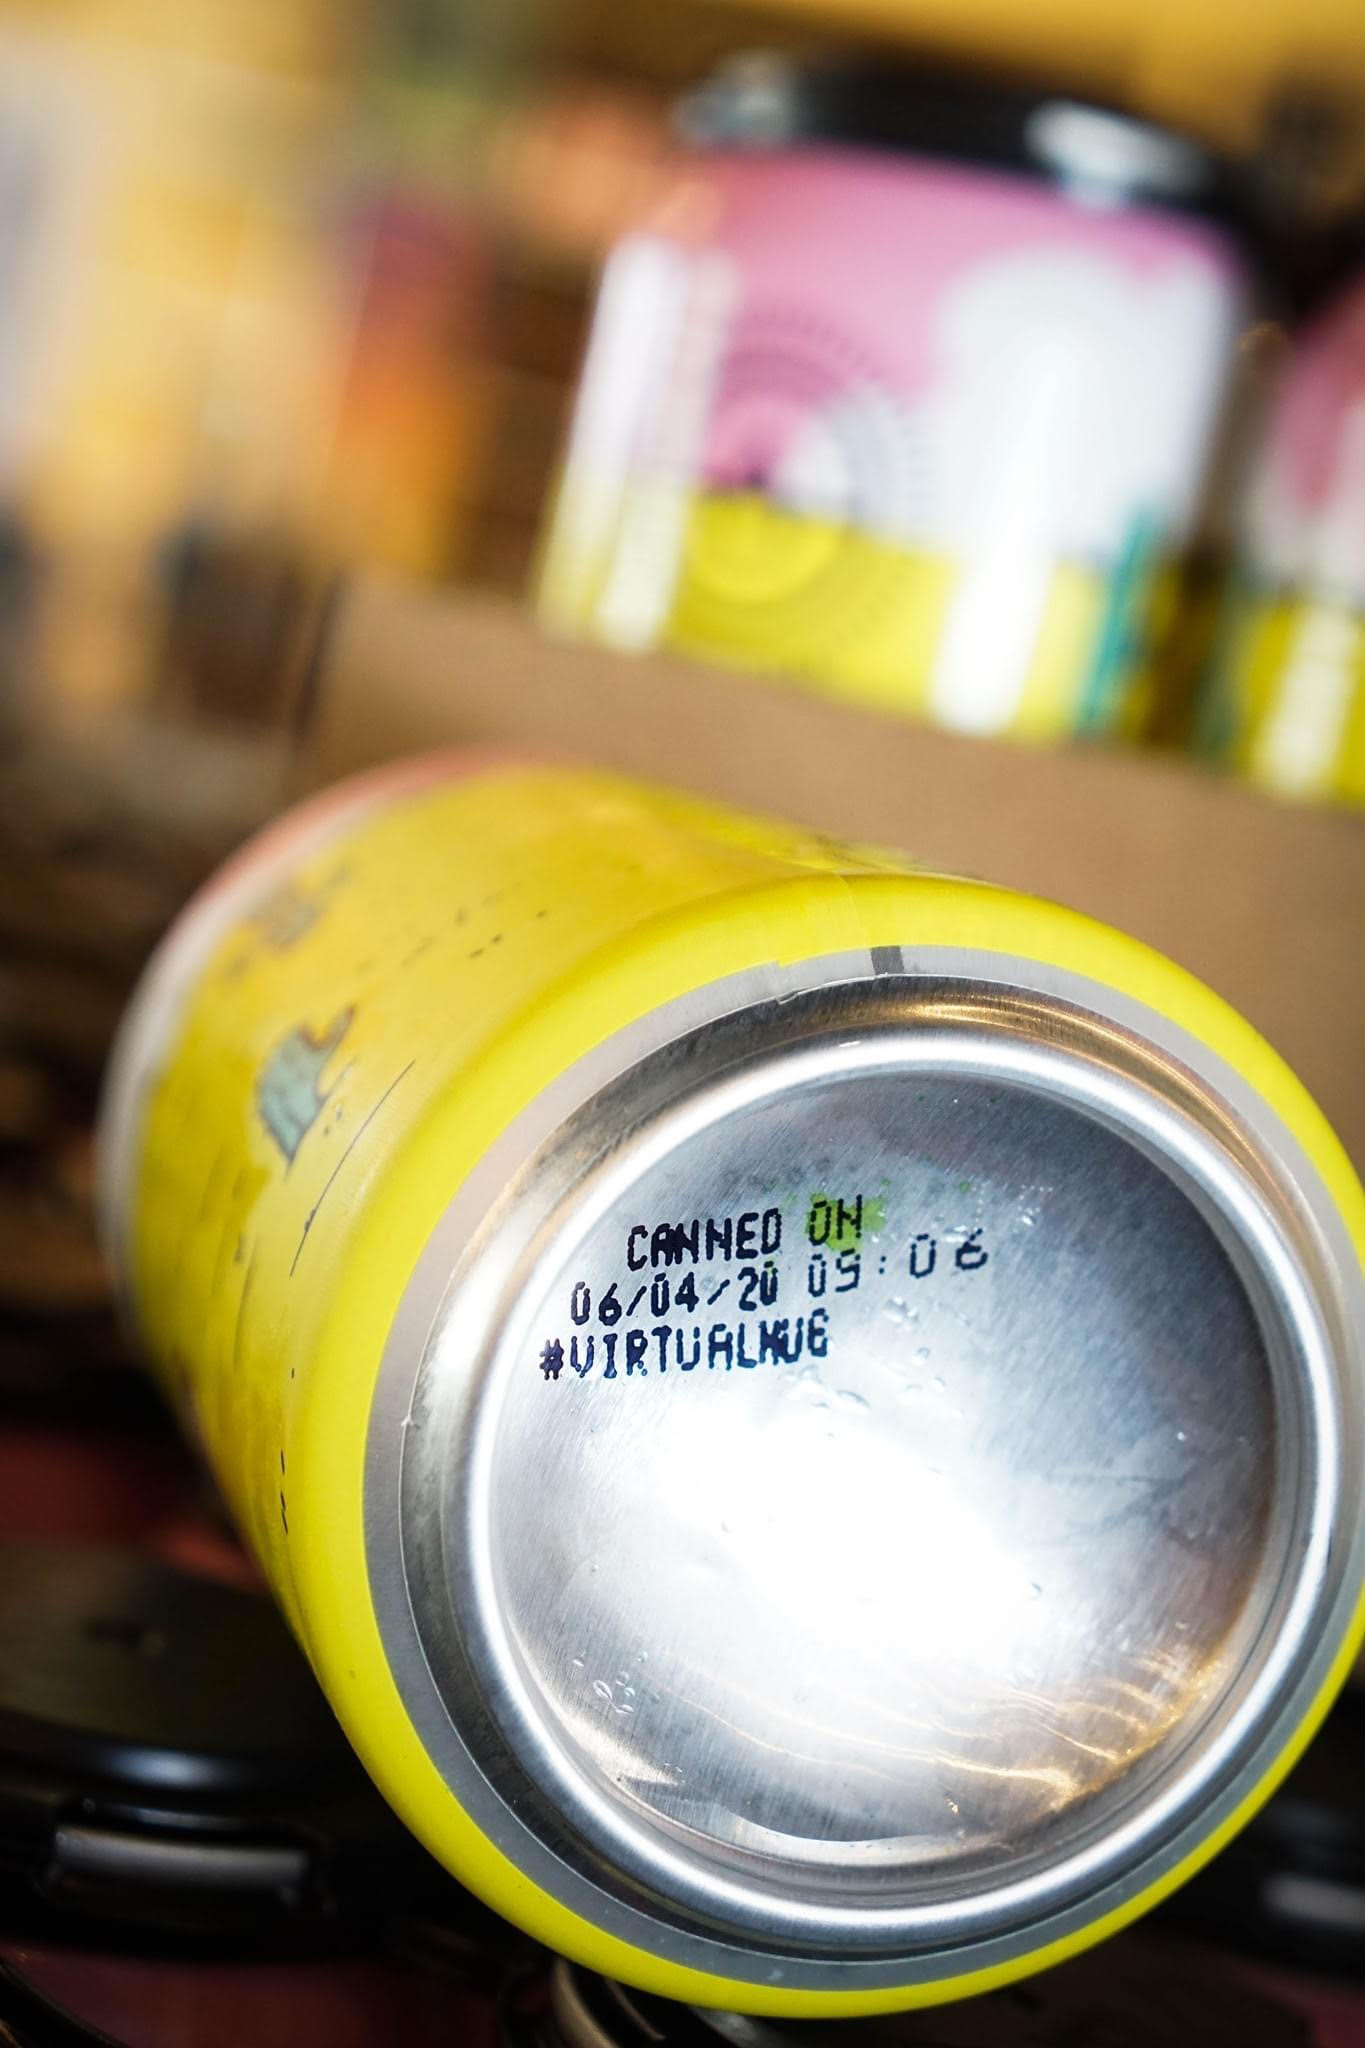 beer-canned-on